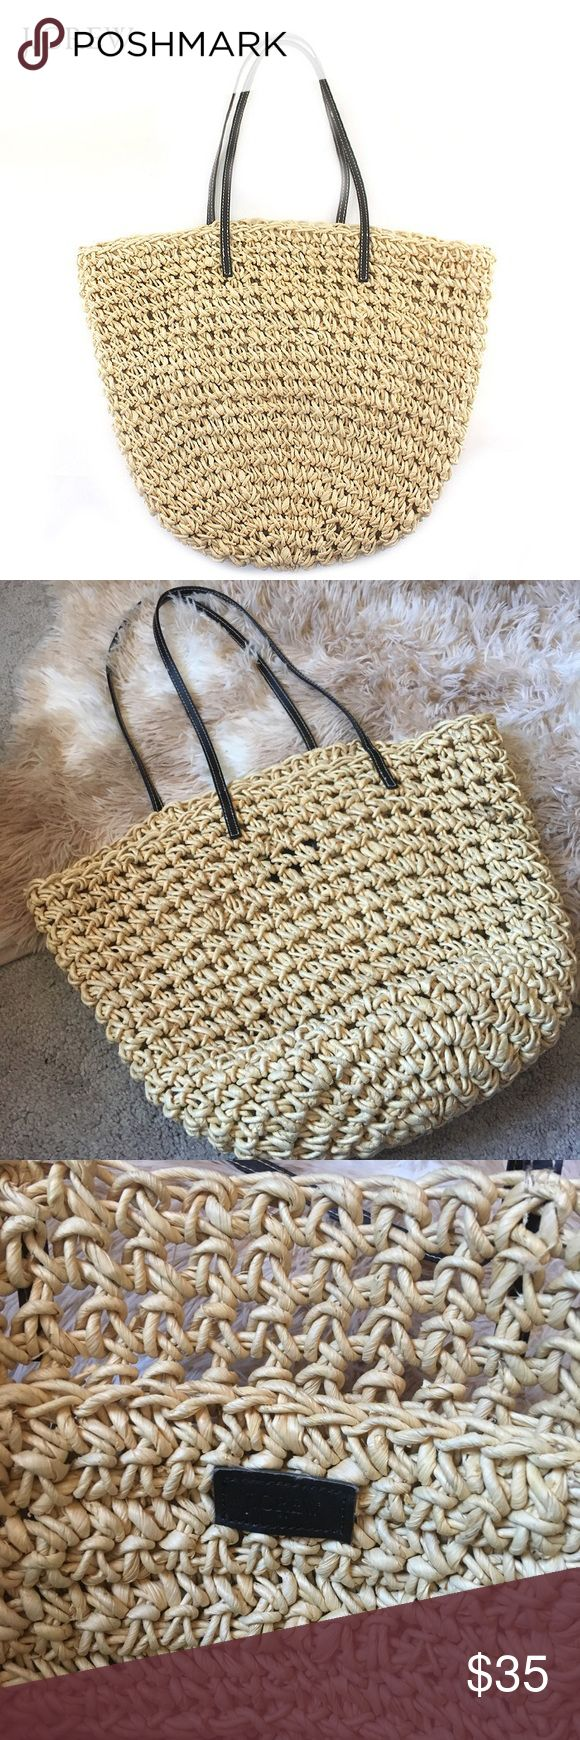 Adorable j crew straw tote!! J.crew tote with interior pocket- super cute! J. Crew Bags Totes